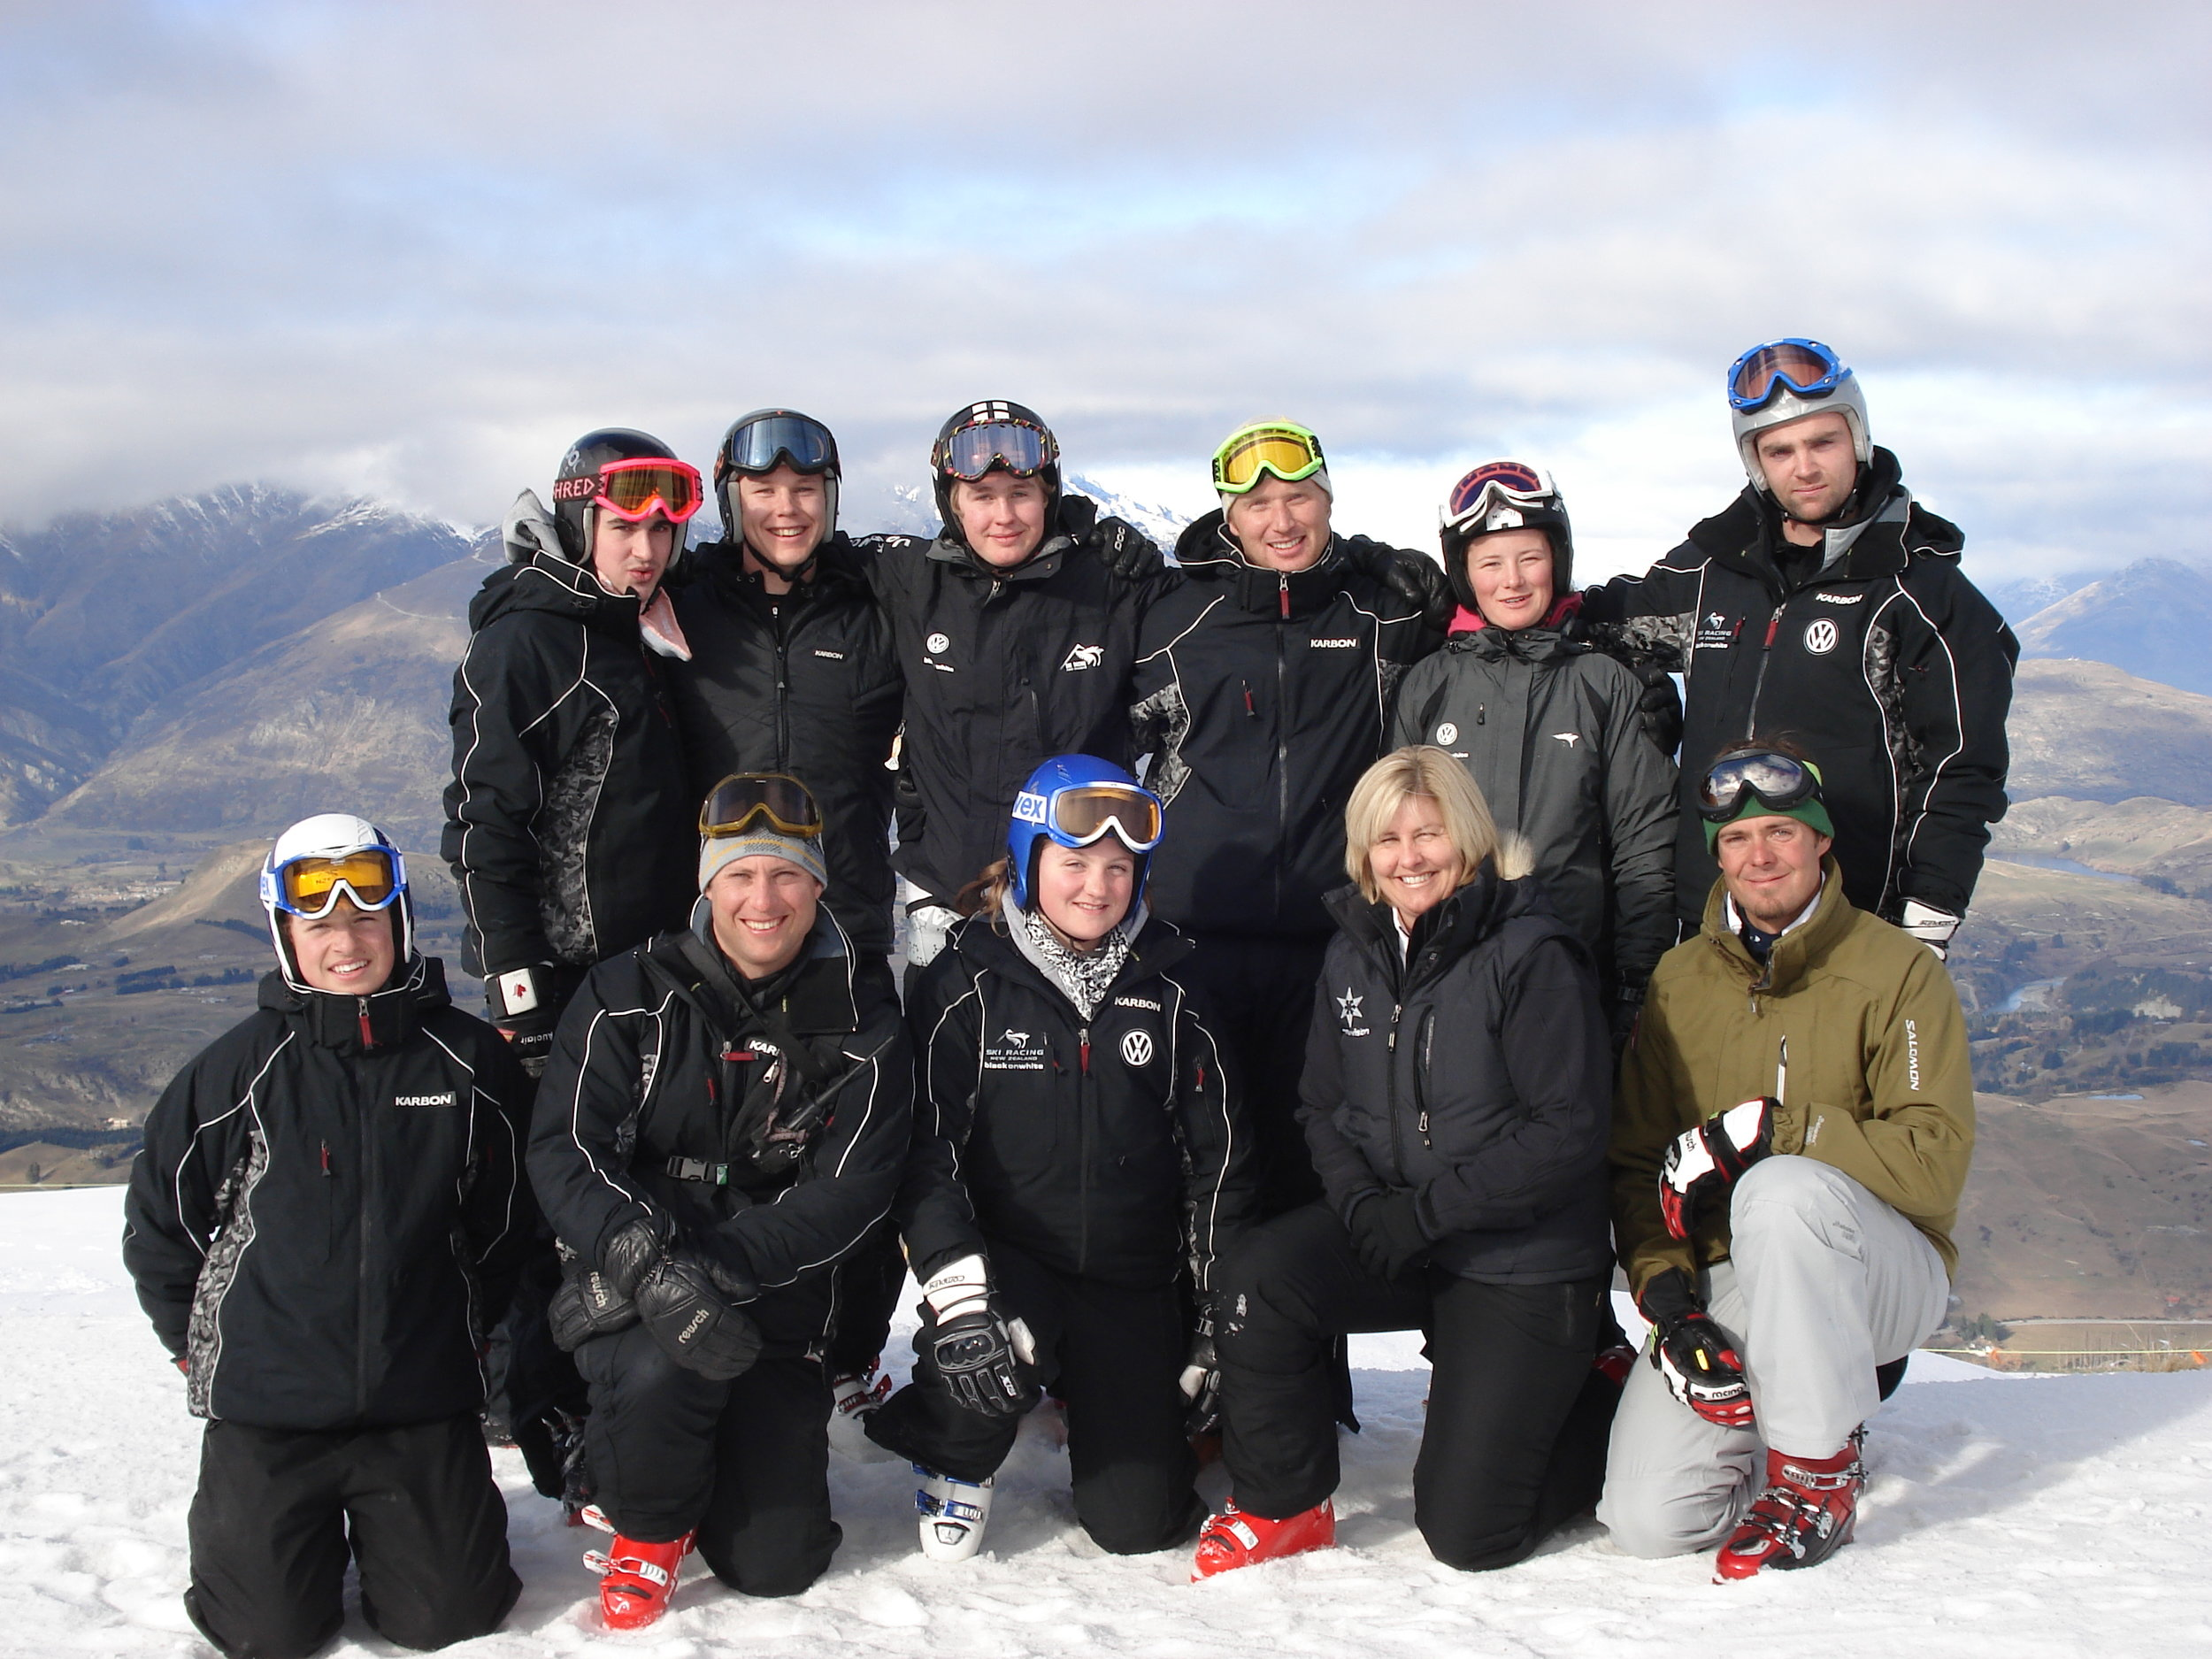 Snowvision Seminar for the NZ National Ski Team with 2006 Winter Olympic Downhill Gold Medalist, Antoine Deneriaz.